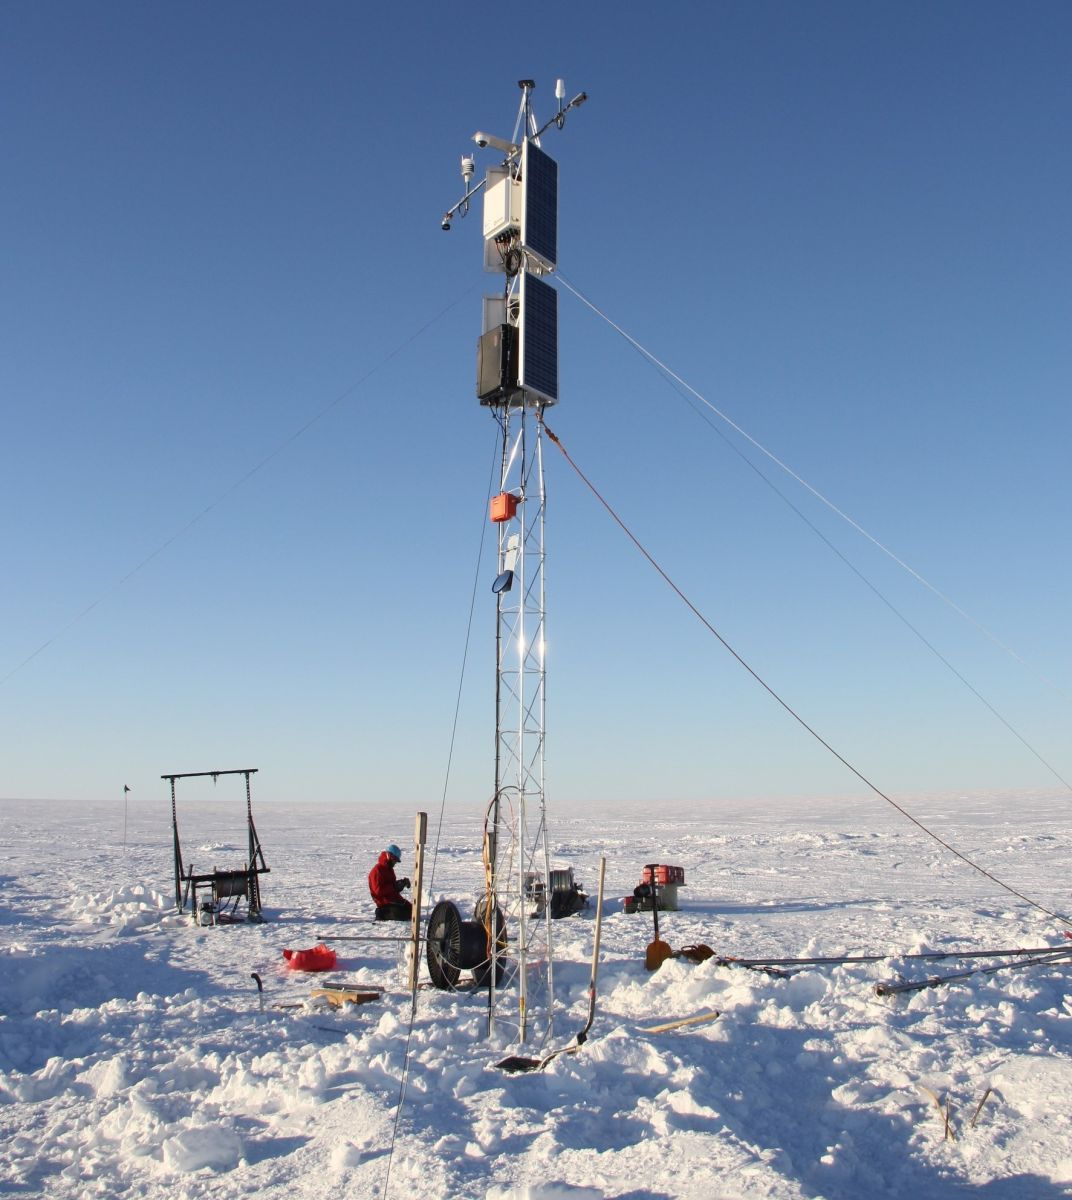 The AMIGOS-III A tower was installed on the Thwaites Ice Shelf. The tower stands roughly 7 meters (22 feet) above the snow surface to allow it to operate through two to three years of snow accumulation. Credit: Ted Scambos